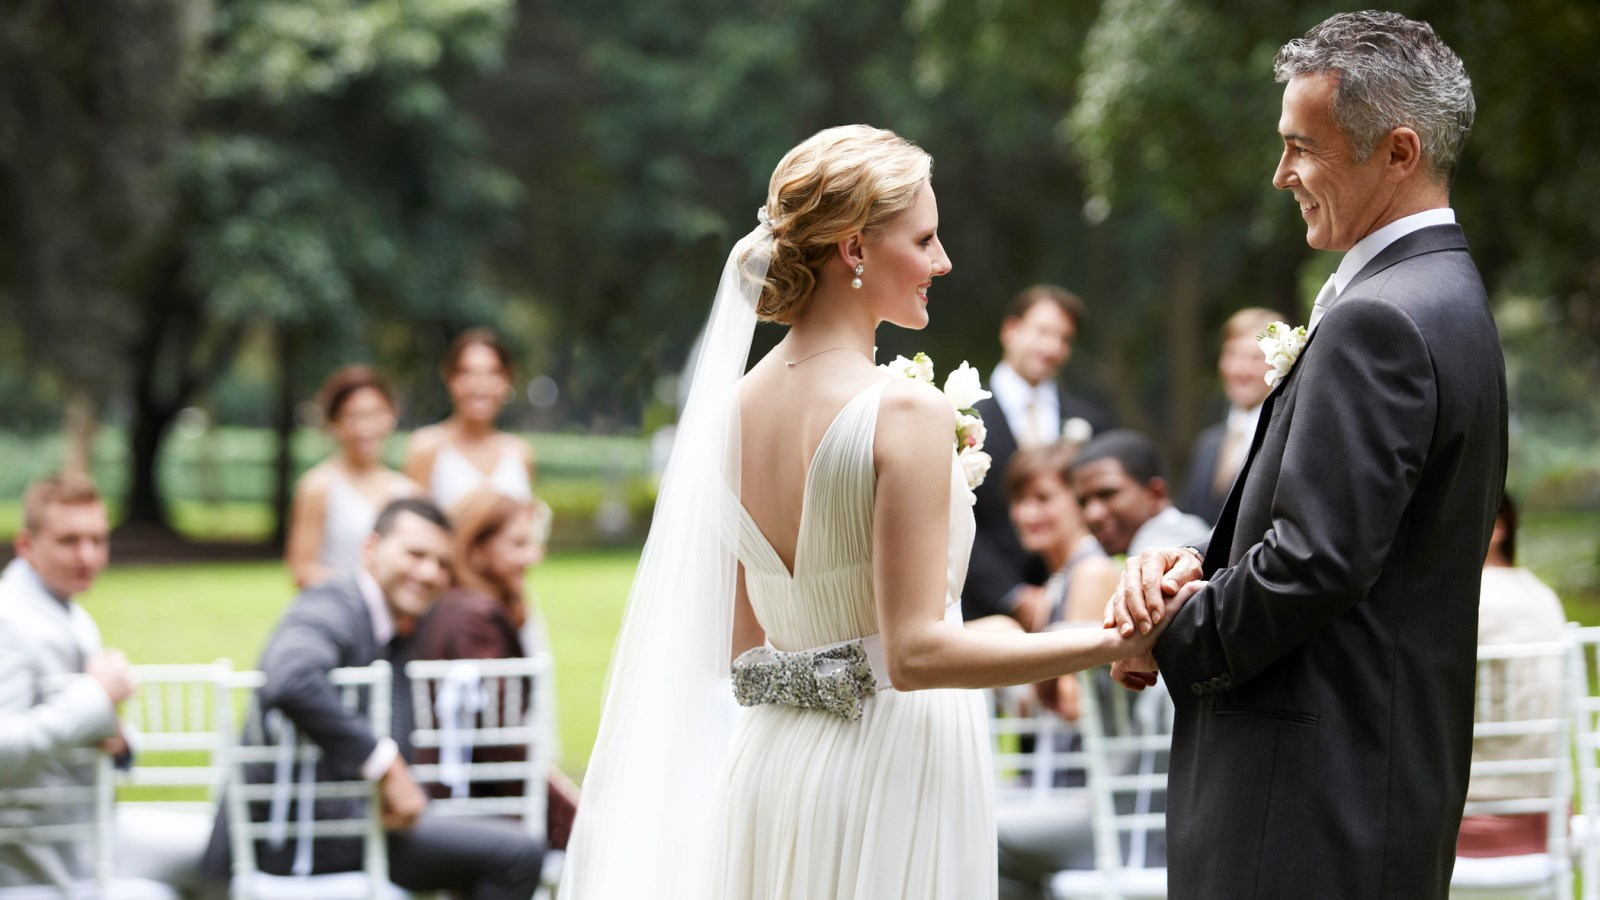 Sacramento Wedding Venues - Ceremony